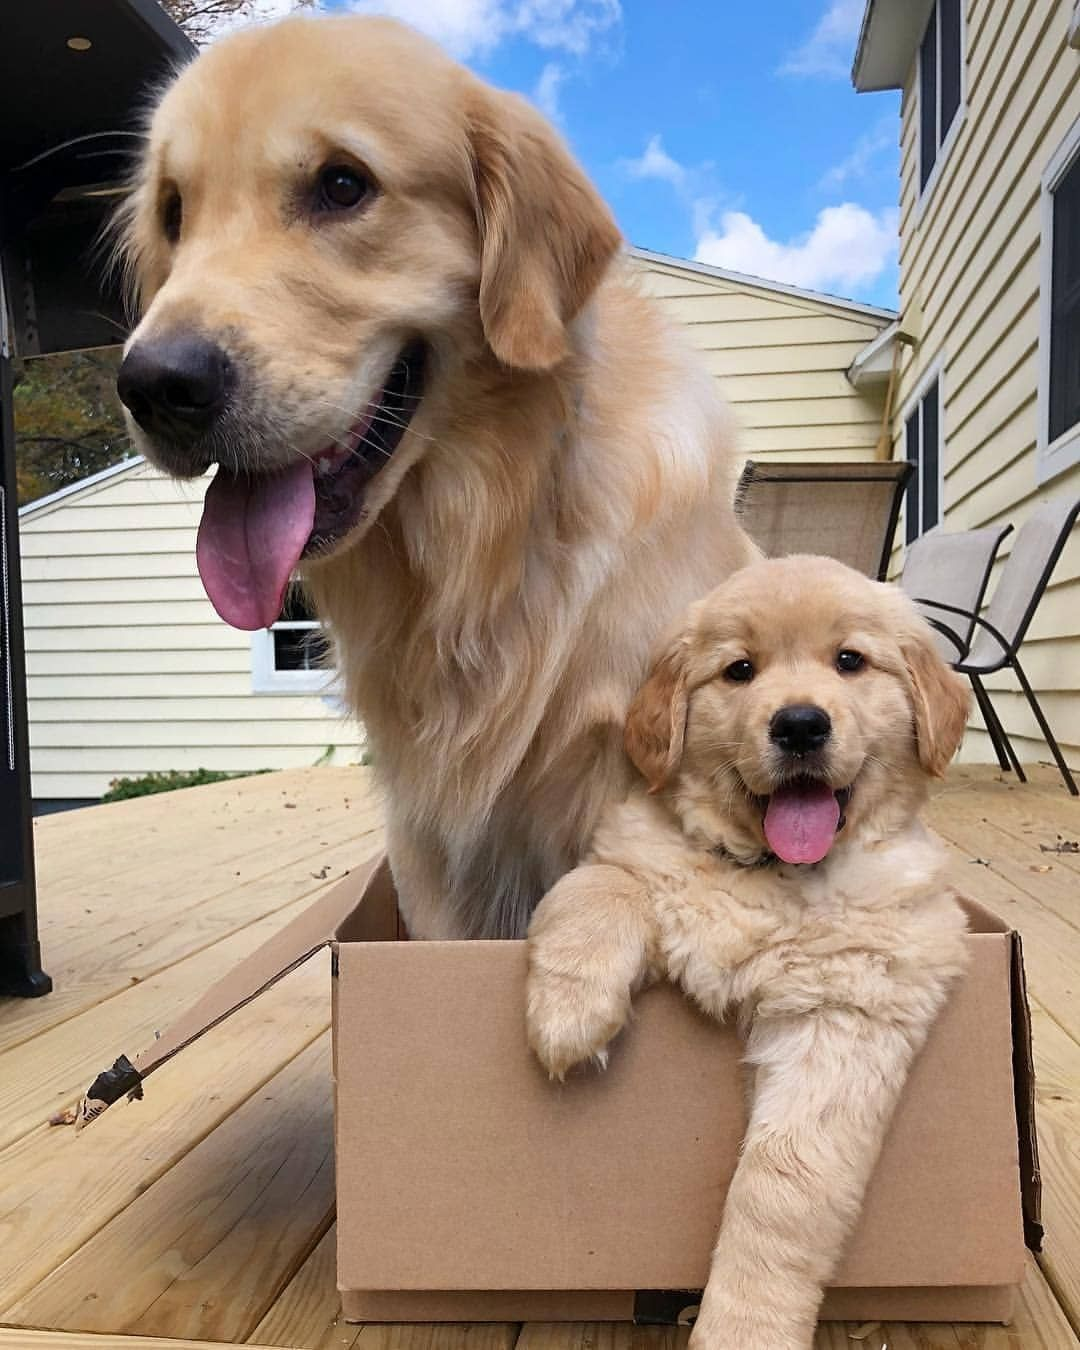 Pin By Lily Schurr On Paws Claws Cute Animals Cute Dogs